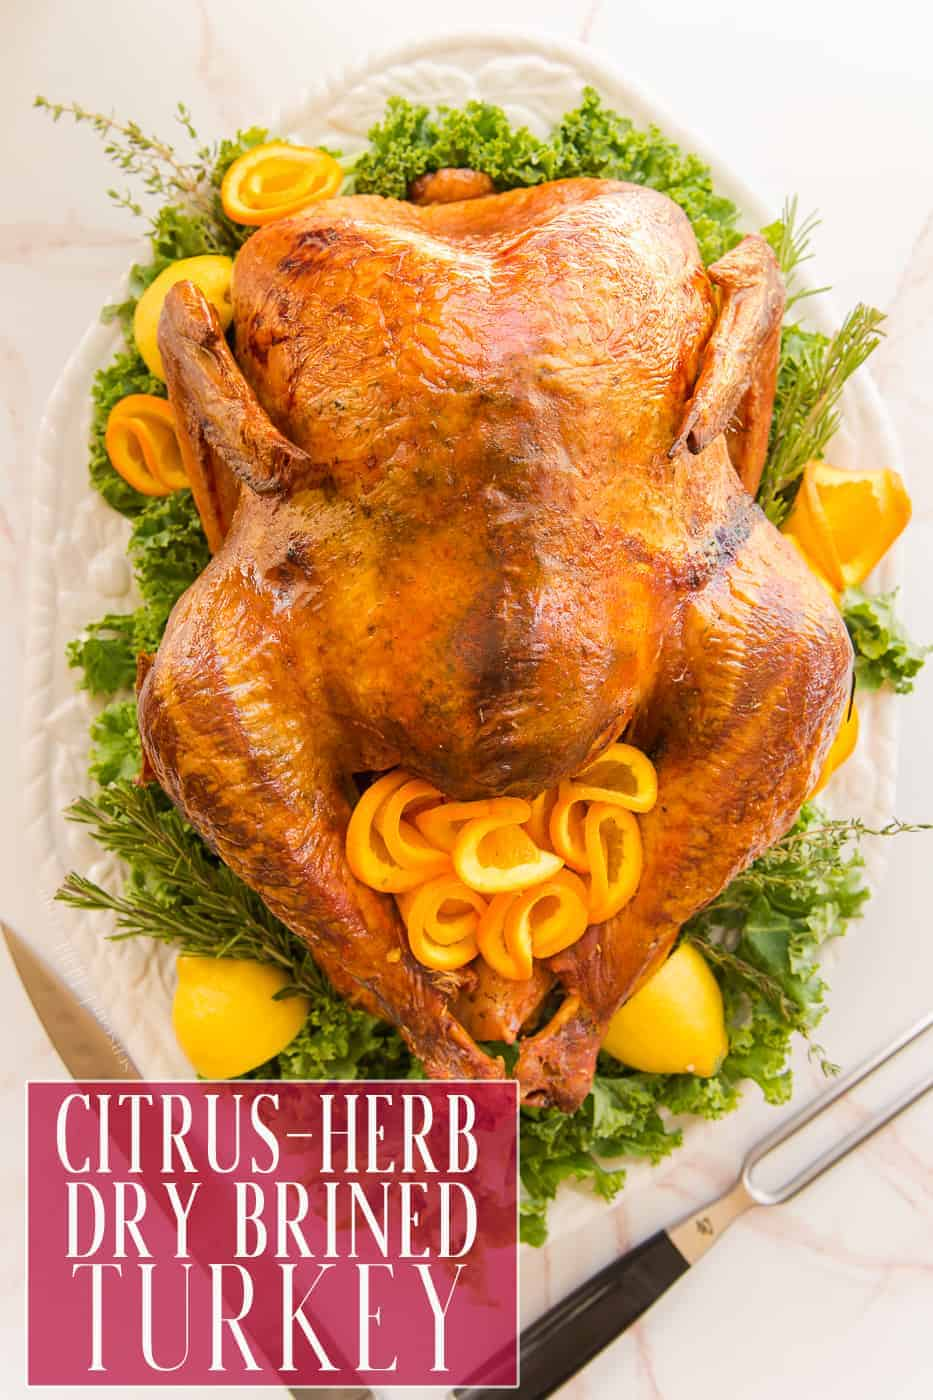 Dry Brine your turkey this year for the most succulent bird you've ever eaten. From what a brine is to why you should always do it, this tutorial will teach you everything you need to know. #turkeyrecipe #holidayturkey #thanksgivingturkey #christmasturkey #roastturkey #roastmeat #meat #drybrine #brine #cookingtechniques #roastingmeat #holidayrecipe #holidaymealplanning #pavo #recetadepavo #holidaymealplanning #easter #newyears #citrusherbbrine #spiceblend #spicerub #dryrub via @ediblesense